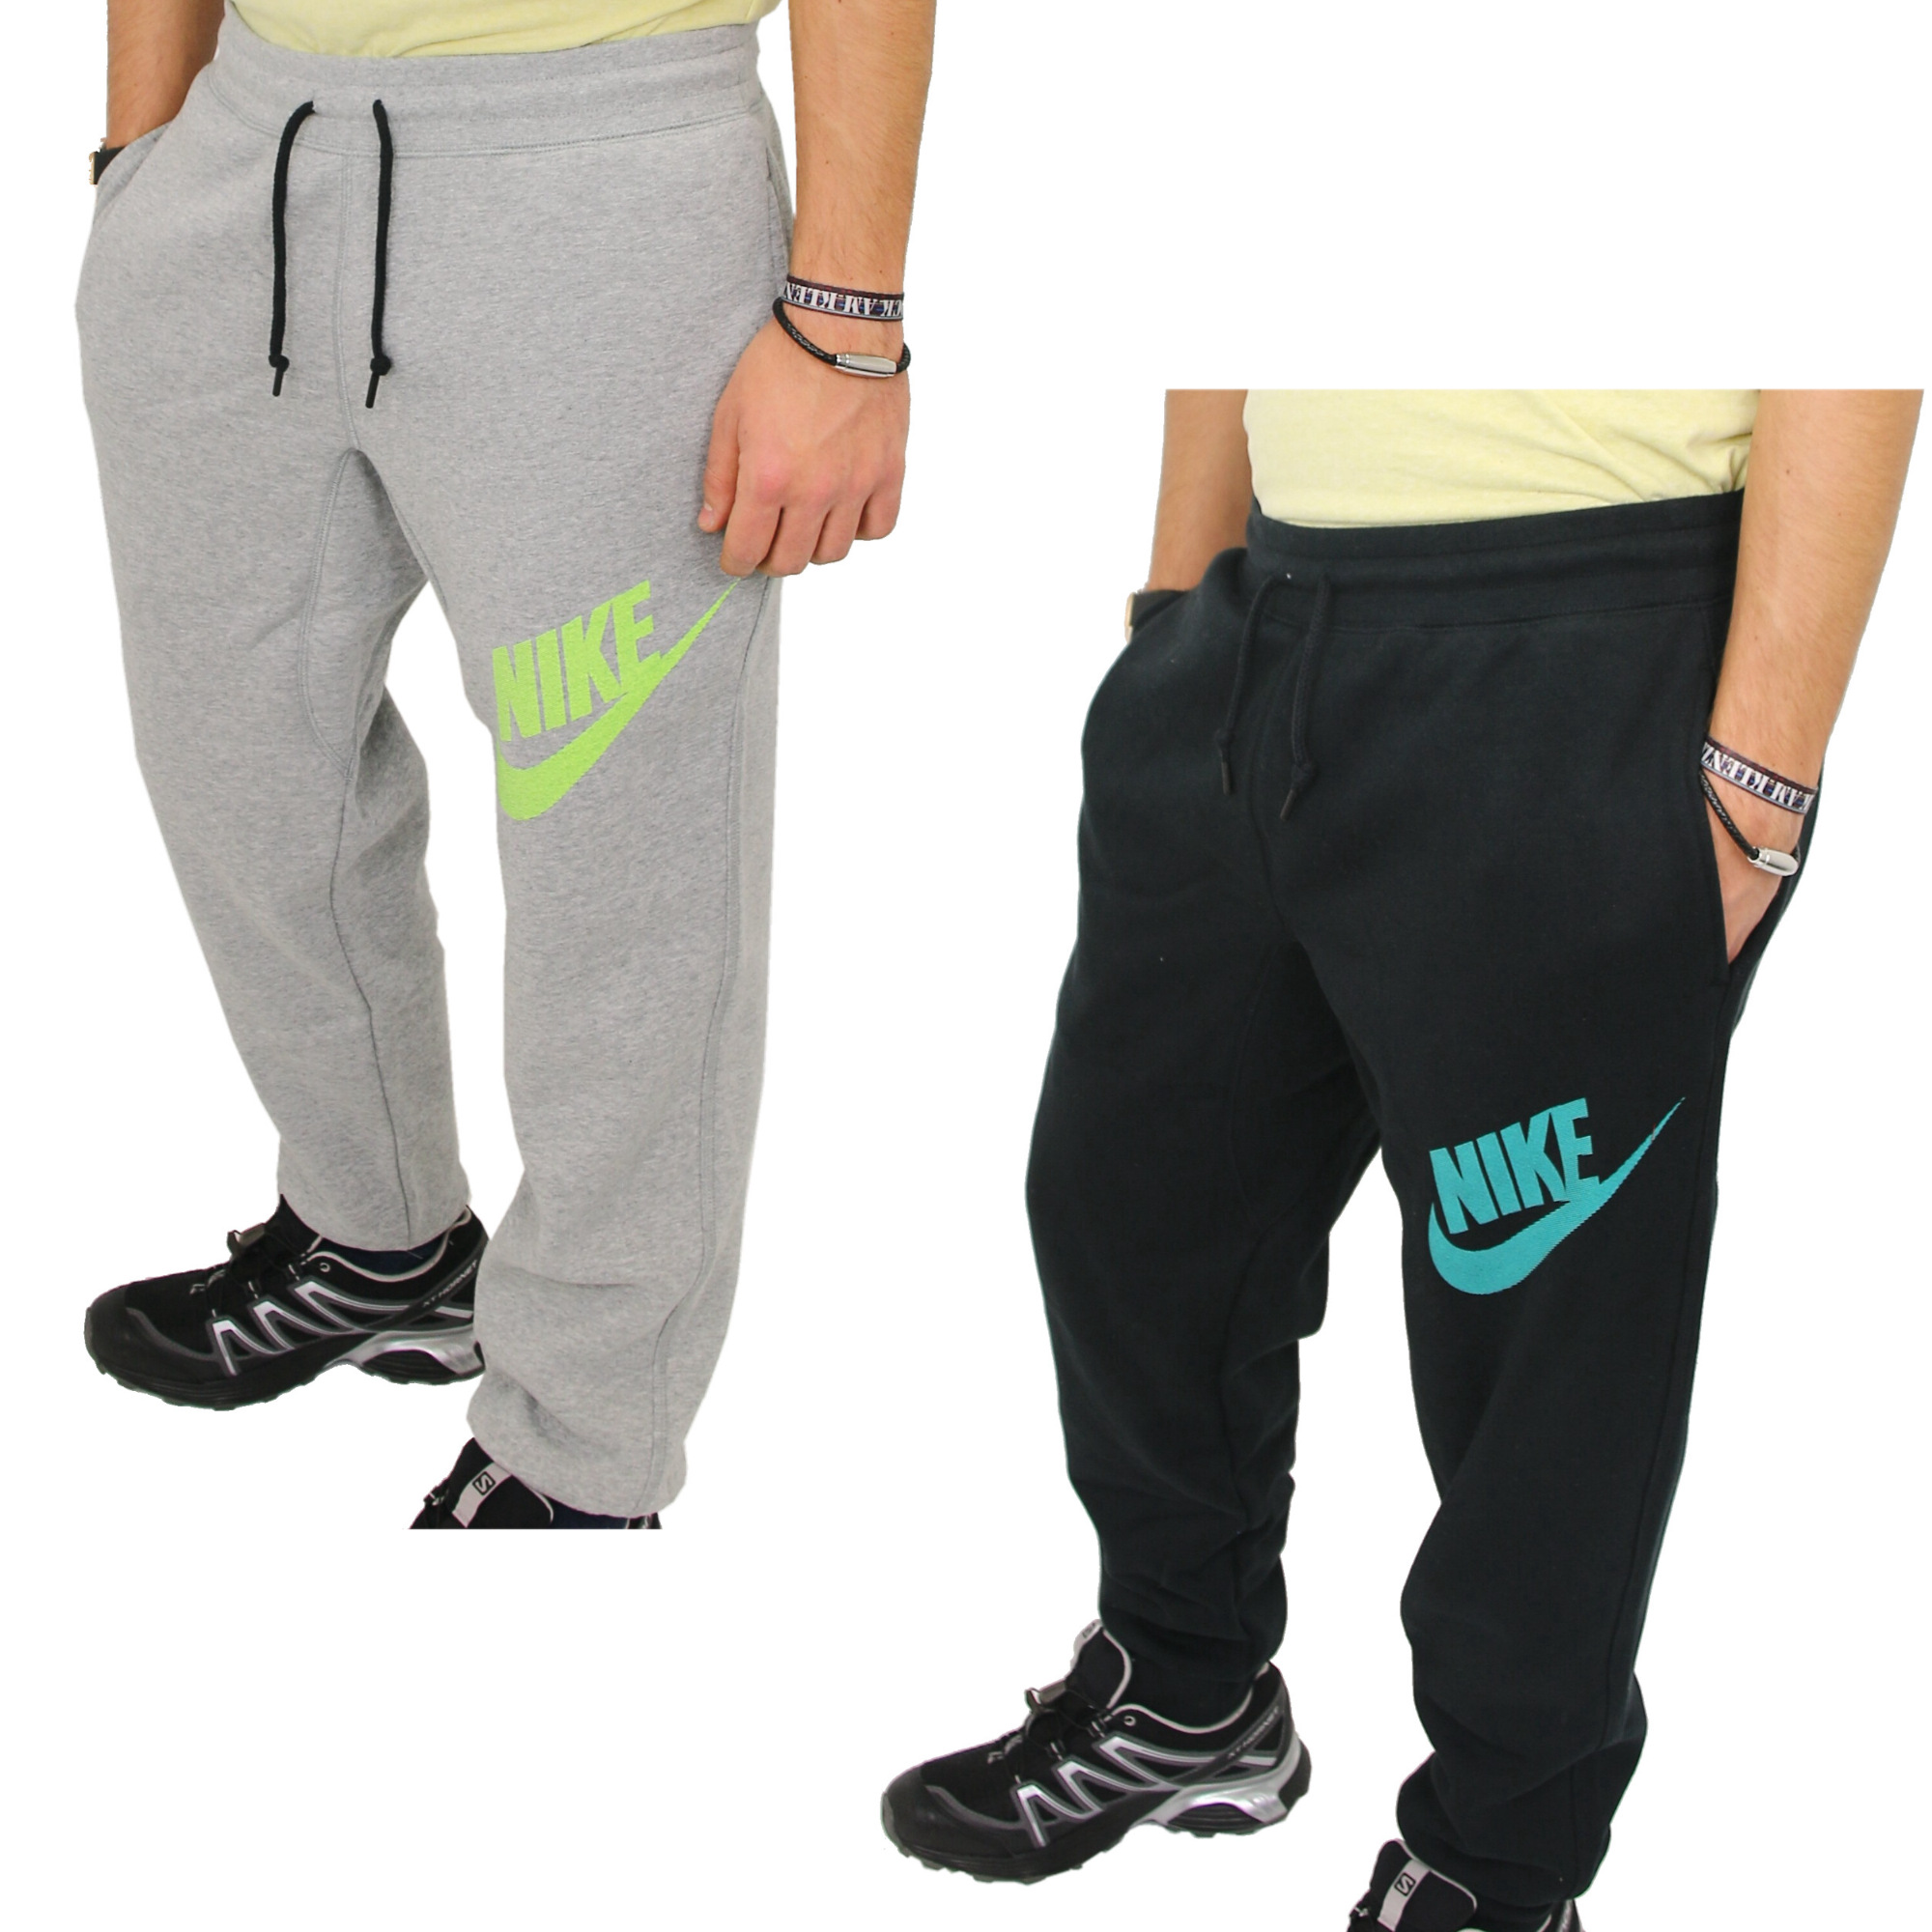 nike aw77 fleece cuff pant hose sporthose jogginghose. Black Bedroom Furniture Sets. Home Design Ideas